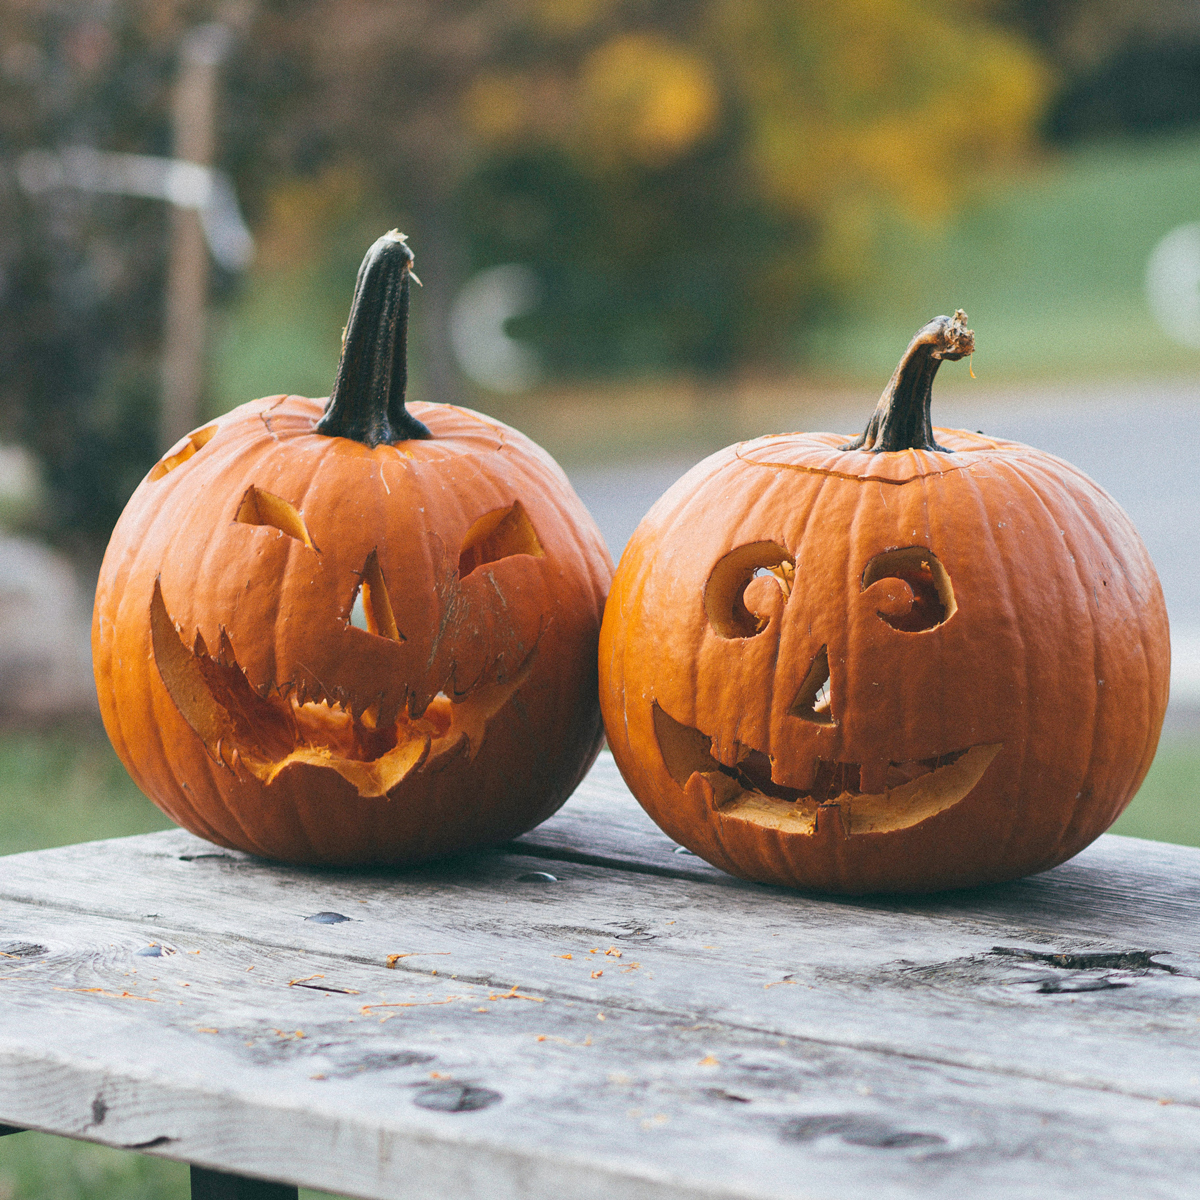 Halloween is so much fun because it's not like other nights of the year. How To Have A Safe And Healthy Covid Friendly Halloween Minnesota Children S Museum